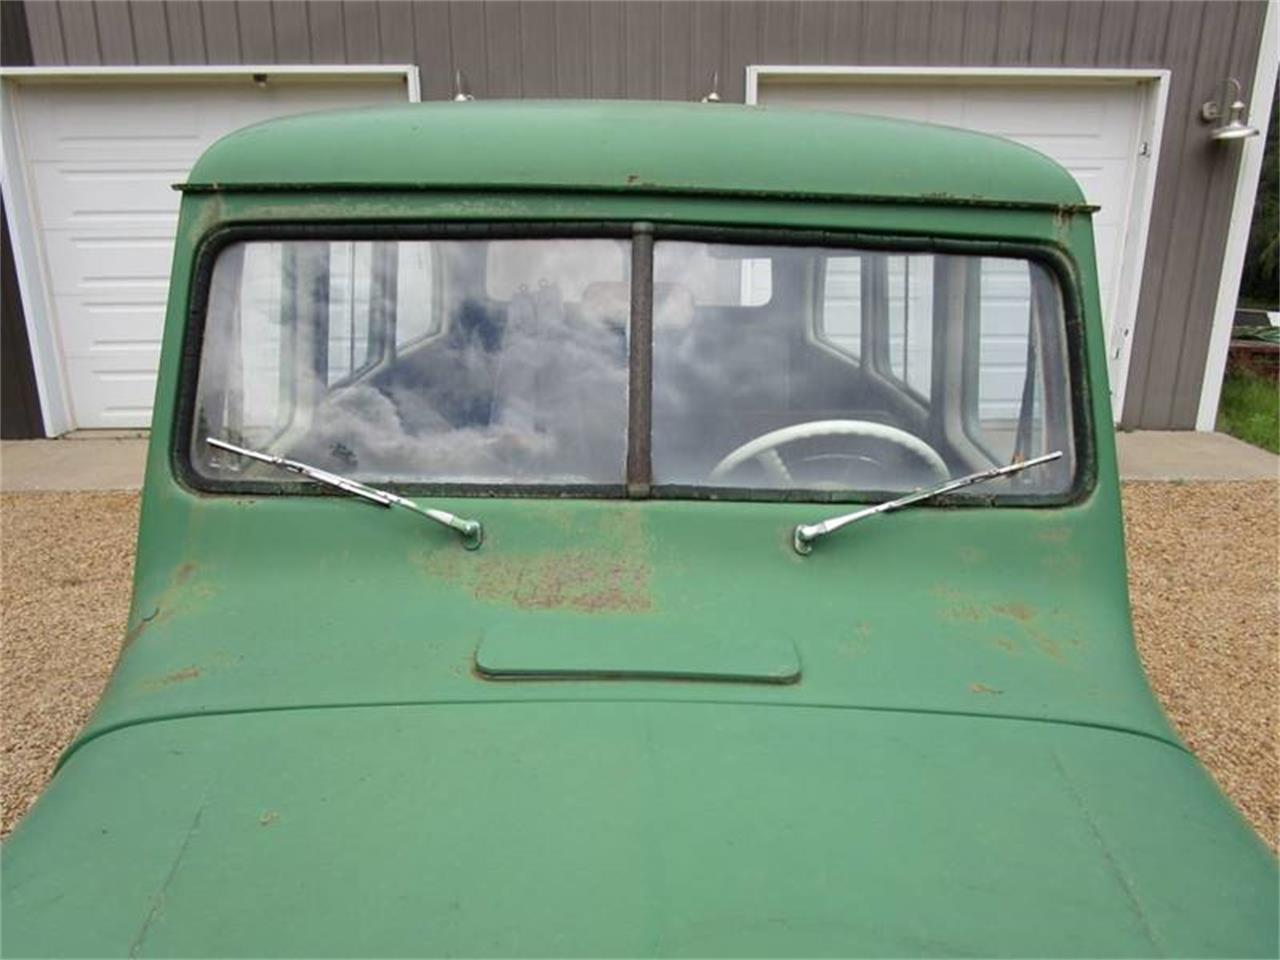 1950 Willys Jeep for sale in Stanley, WI – photo 72